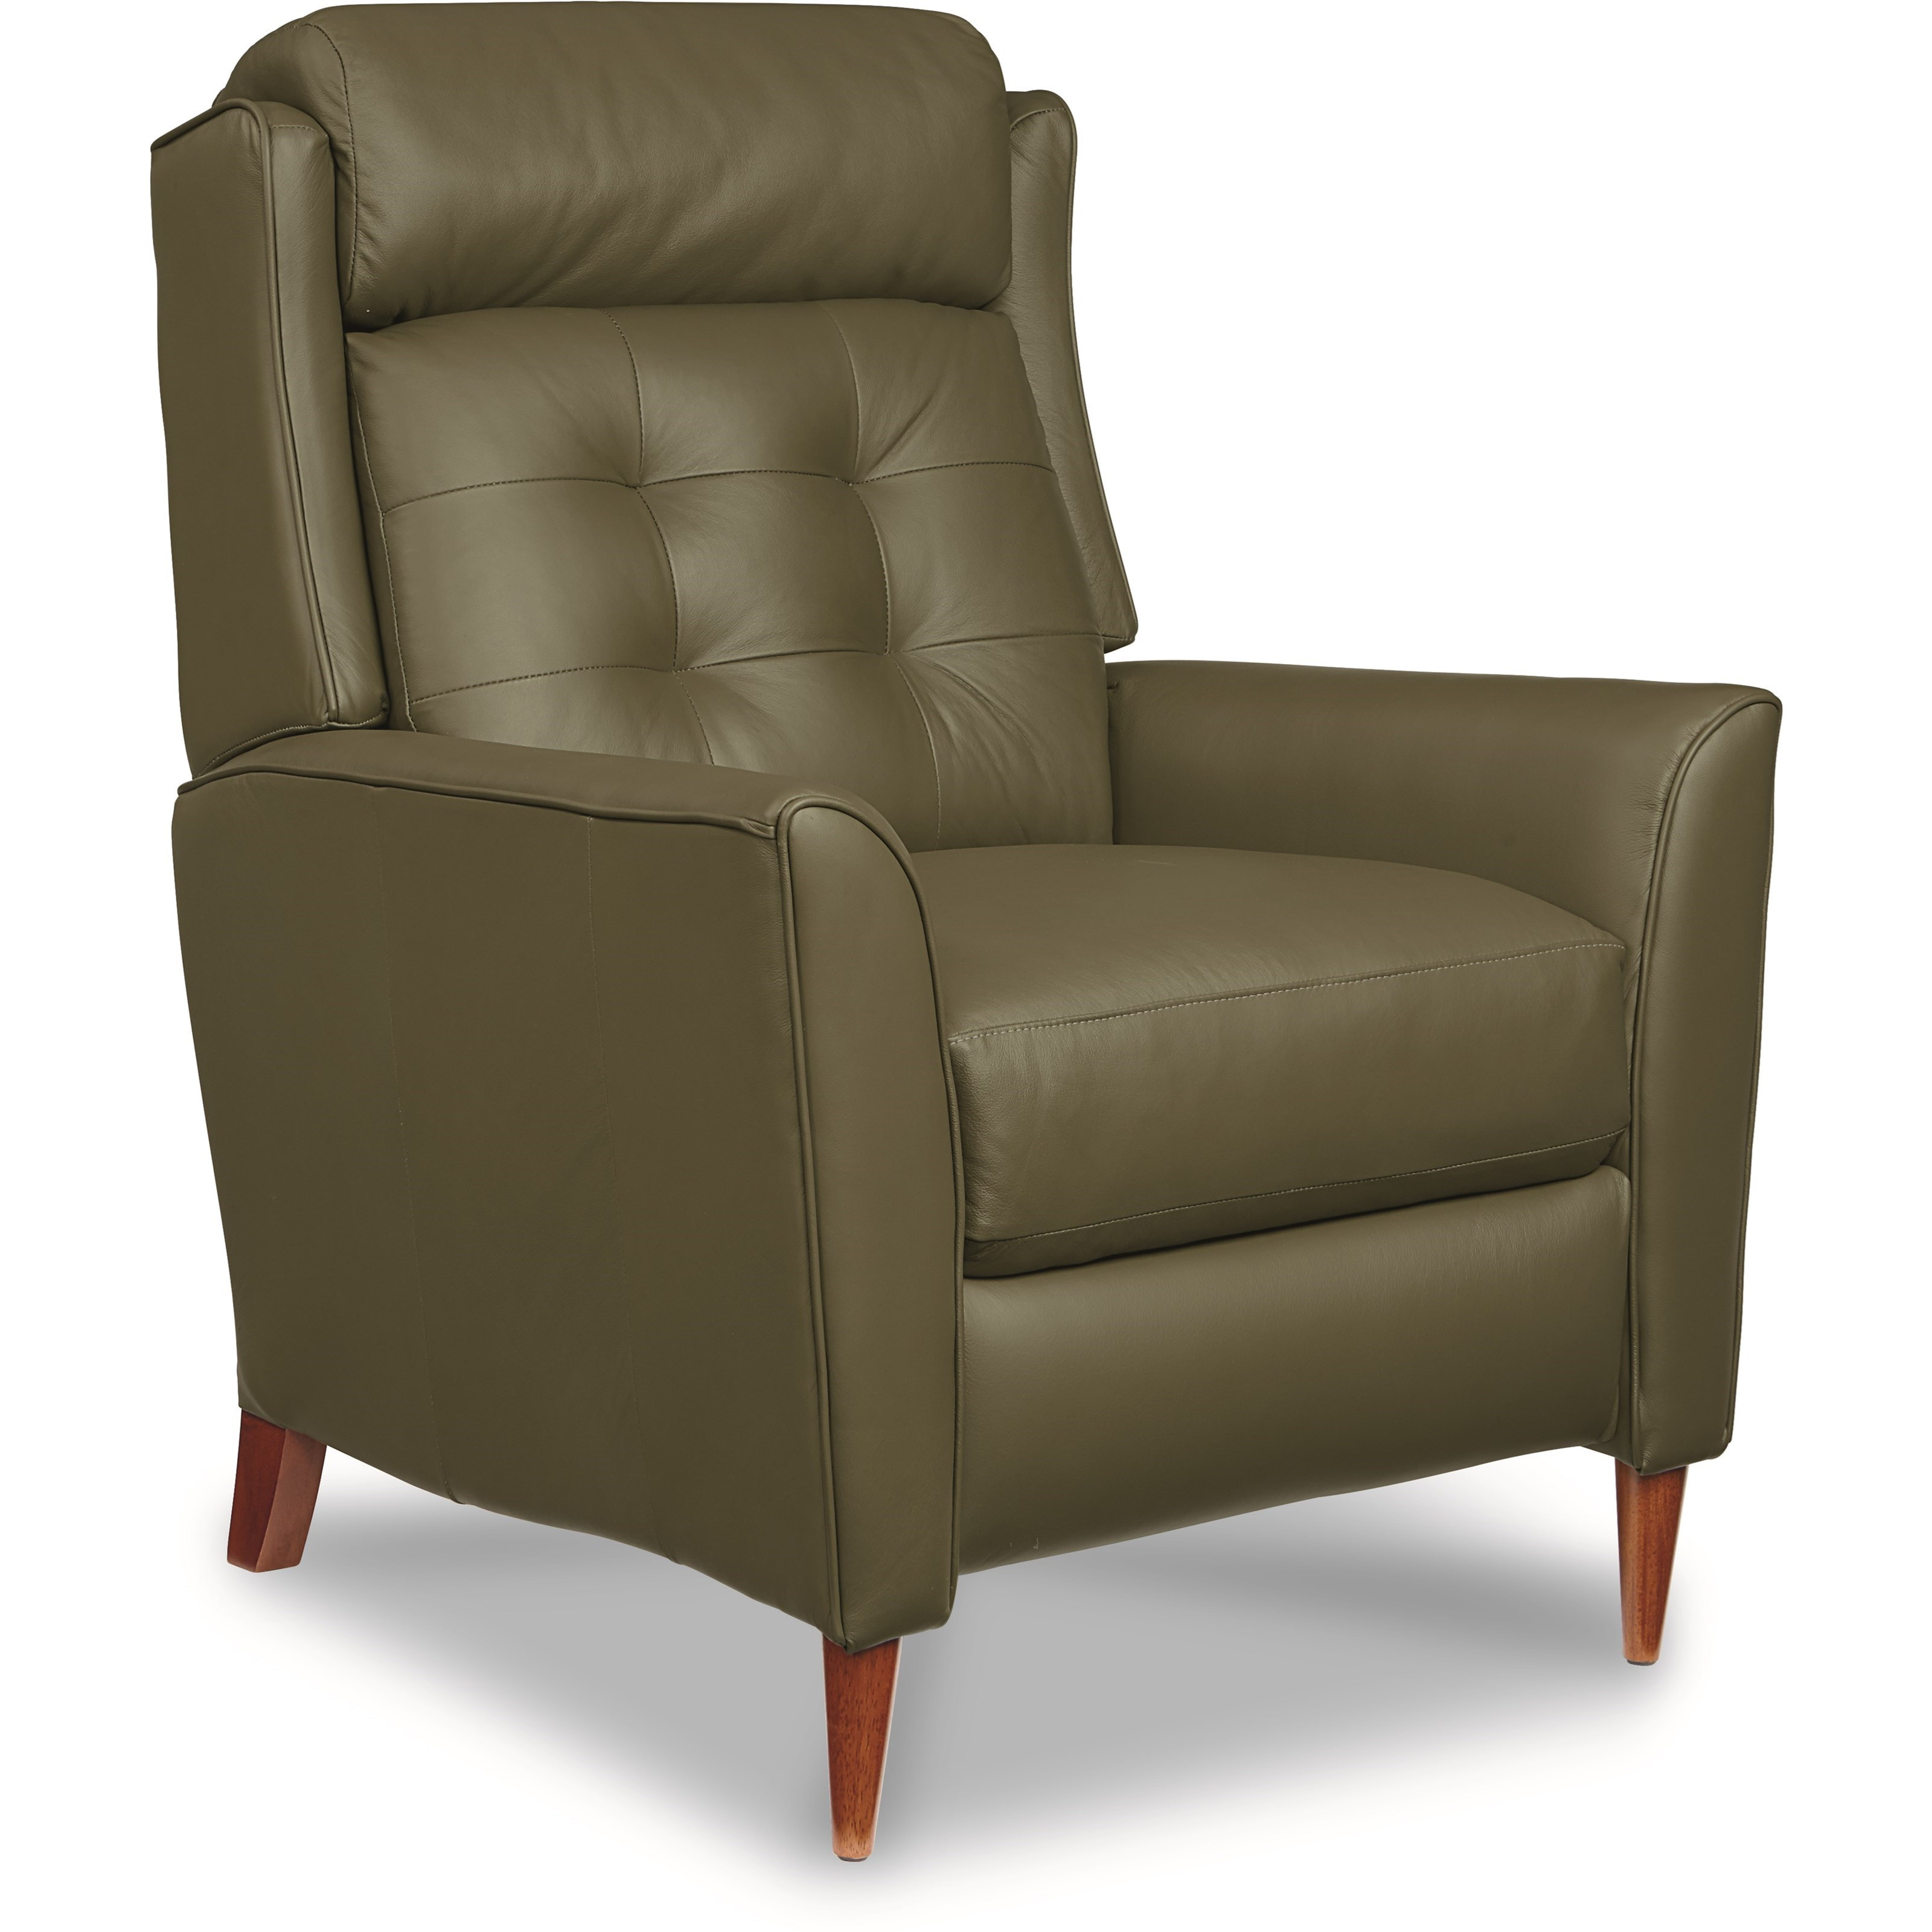 Brentwood High Leg Recliner by La-Z-Boy at Jordan's Home Furnishings